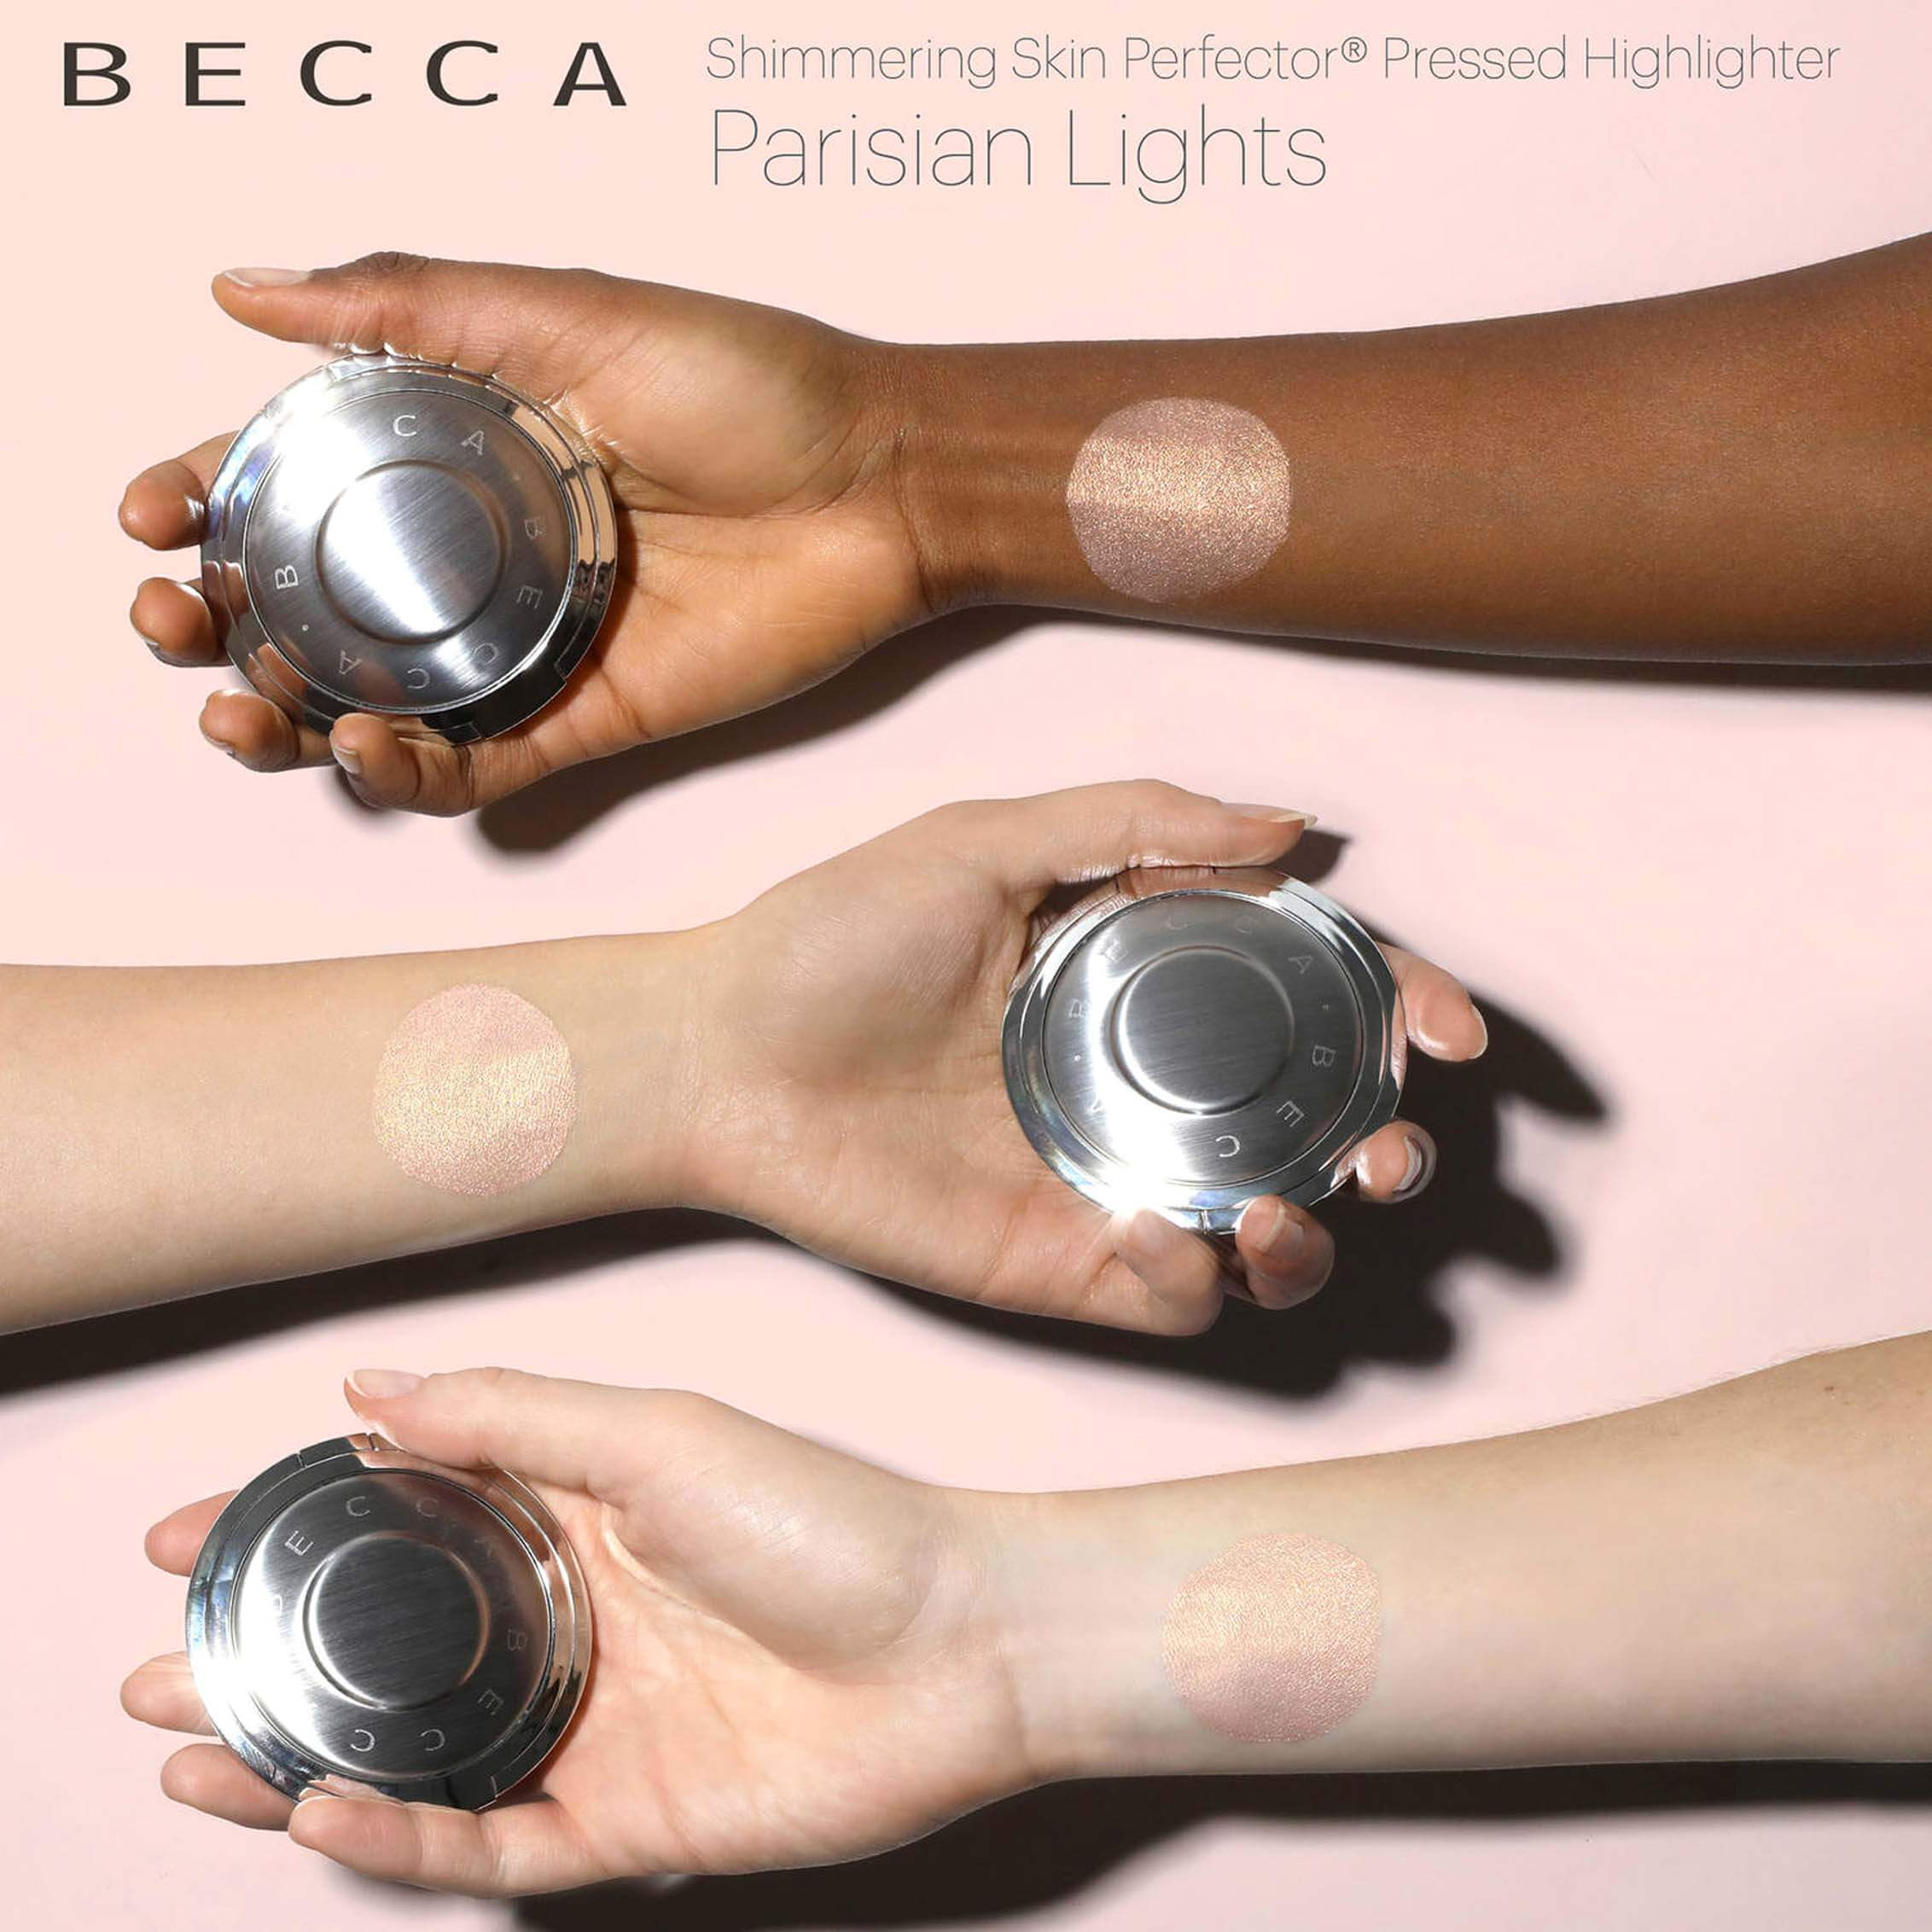 89 Revue Highlighter Parisian Lights Becca X Sananas